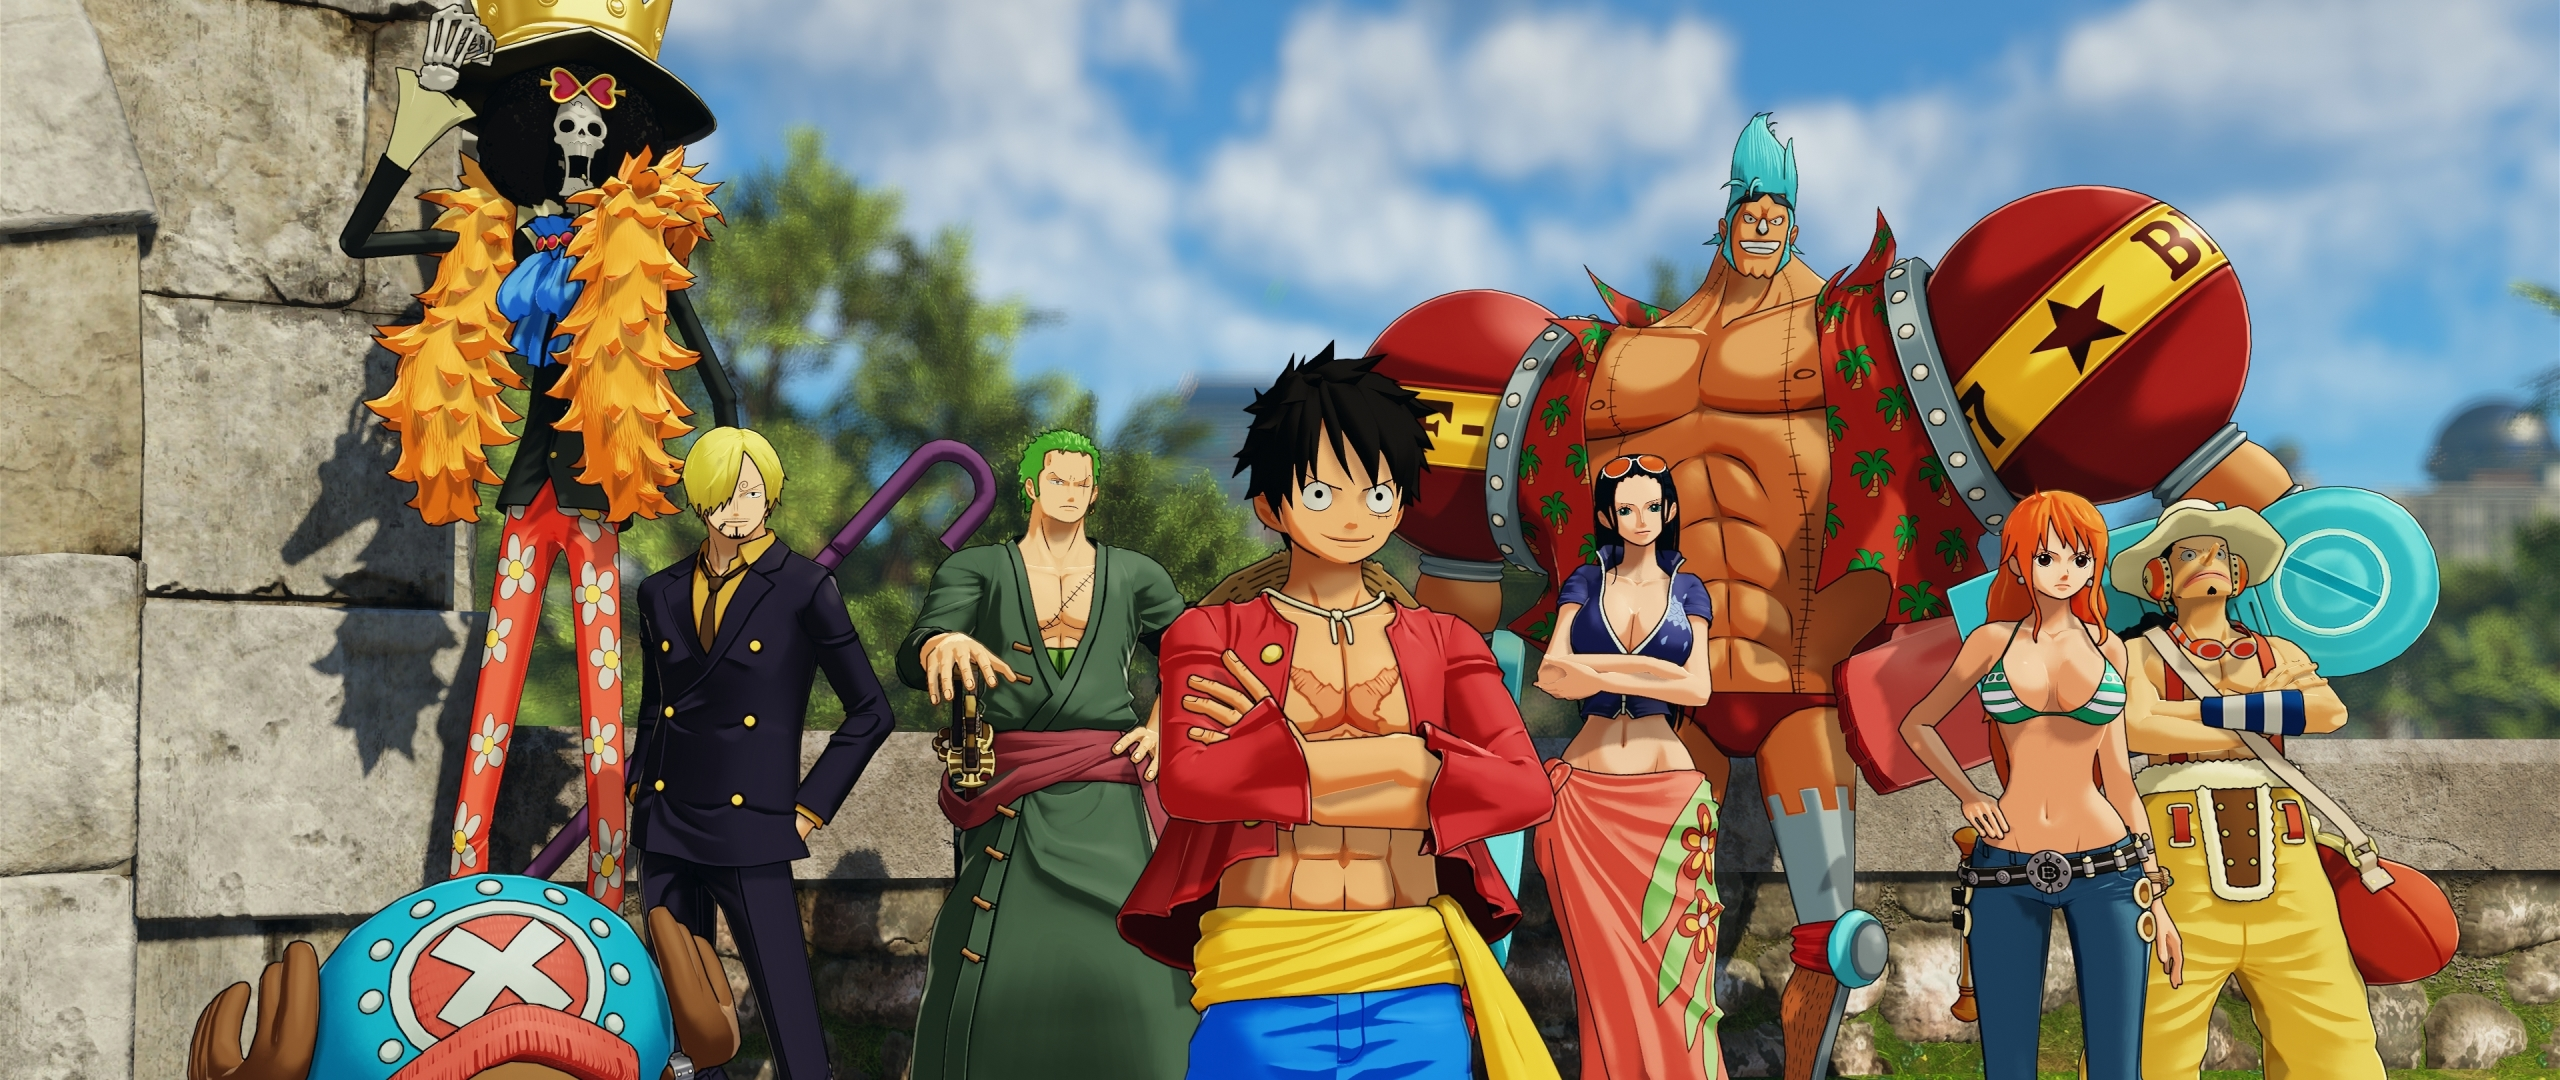 2560x1080 One Piece World Seeker 4k 2560x1080 Resolution